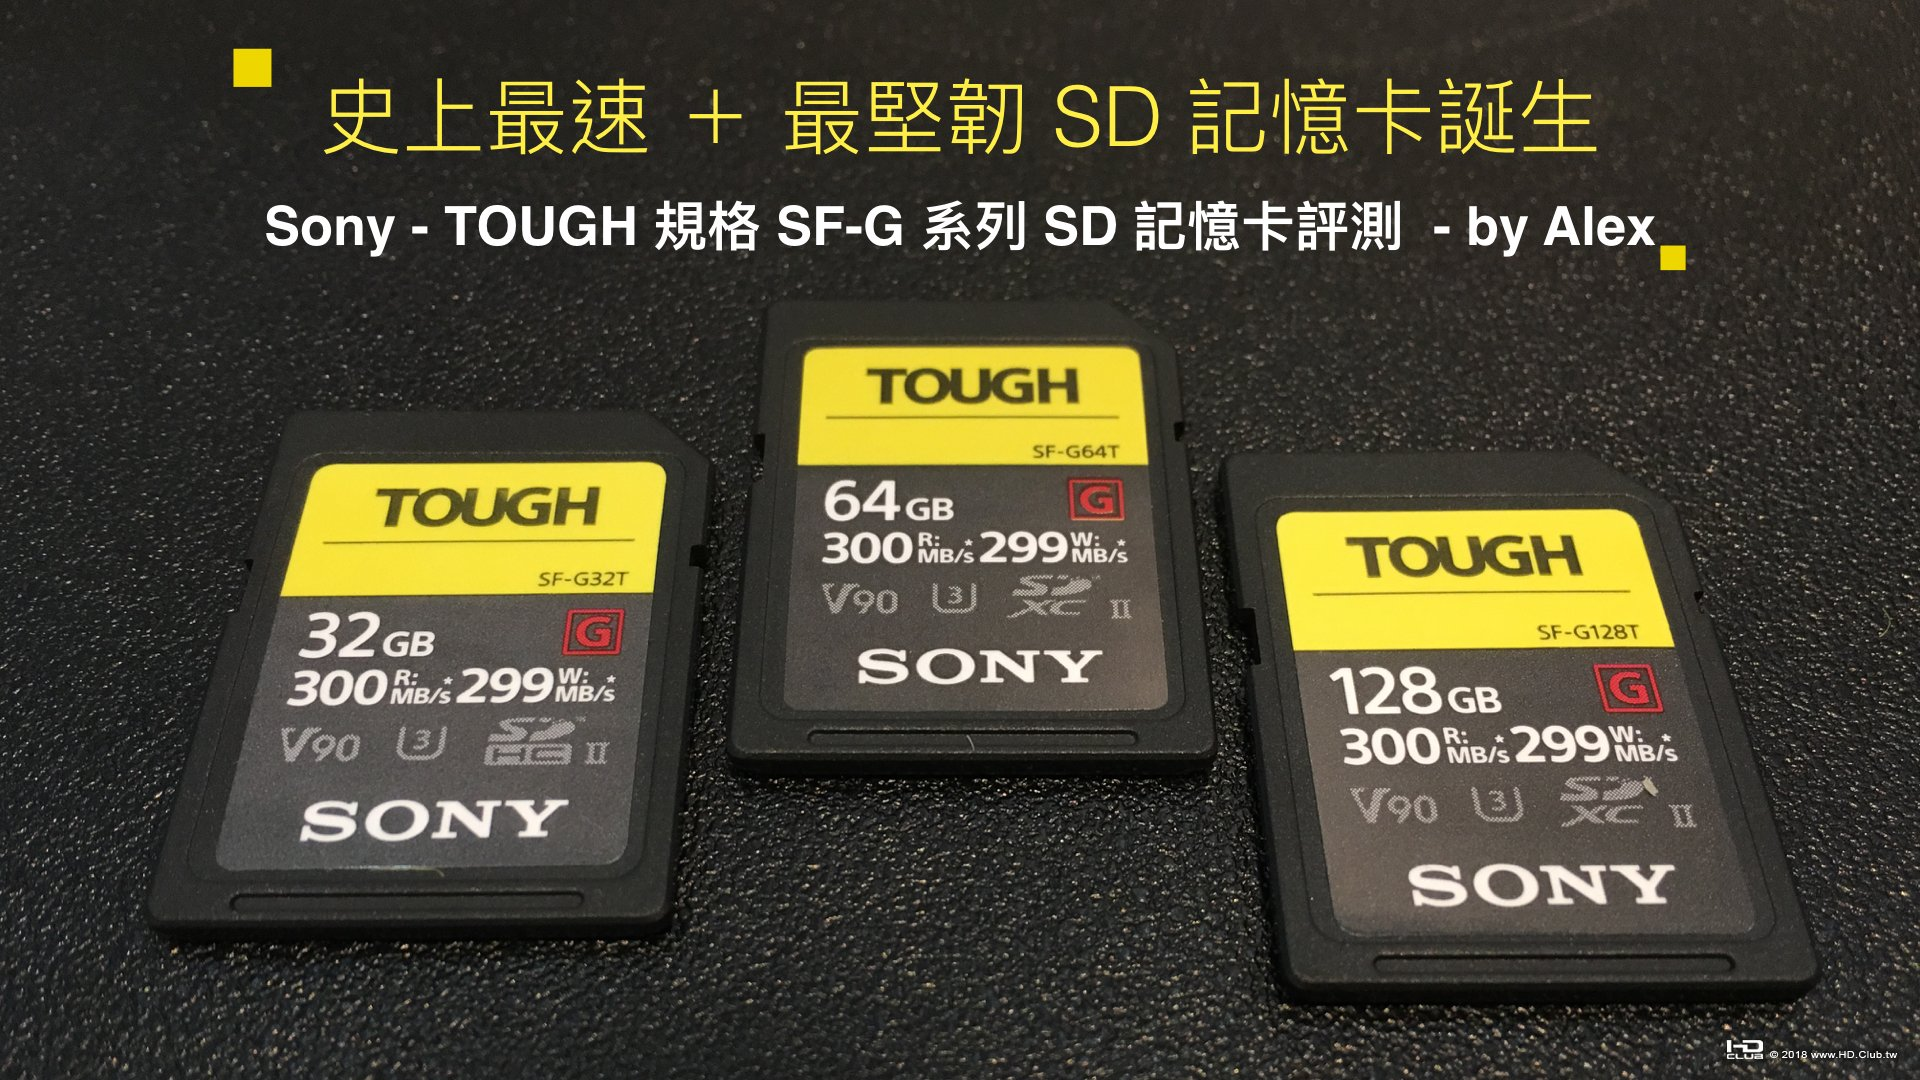 Sony_TOUGH_SF-GT.001.jpeg